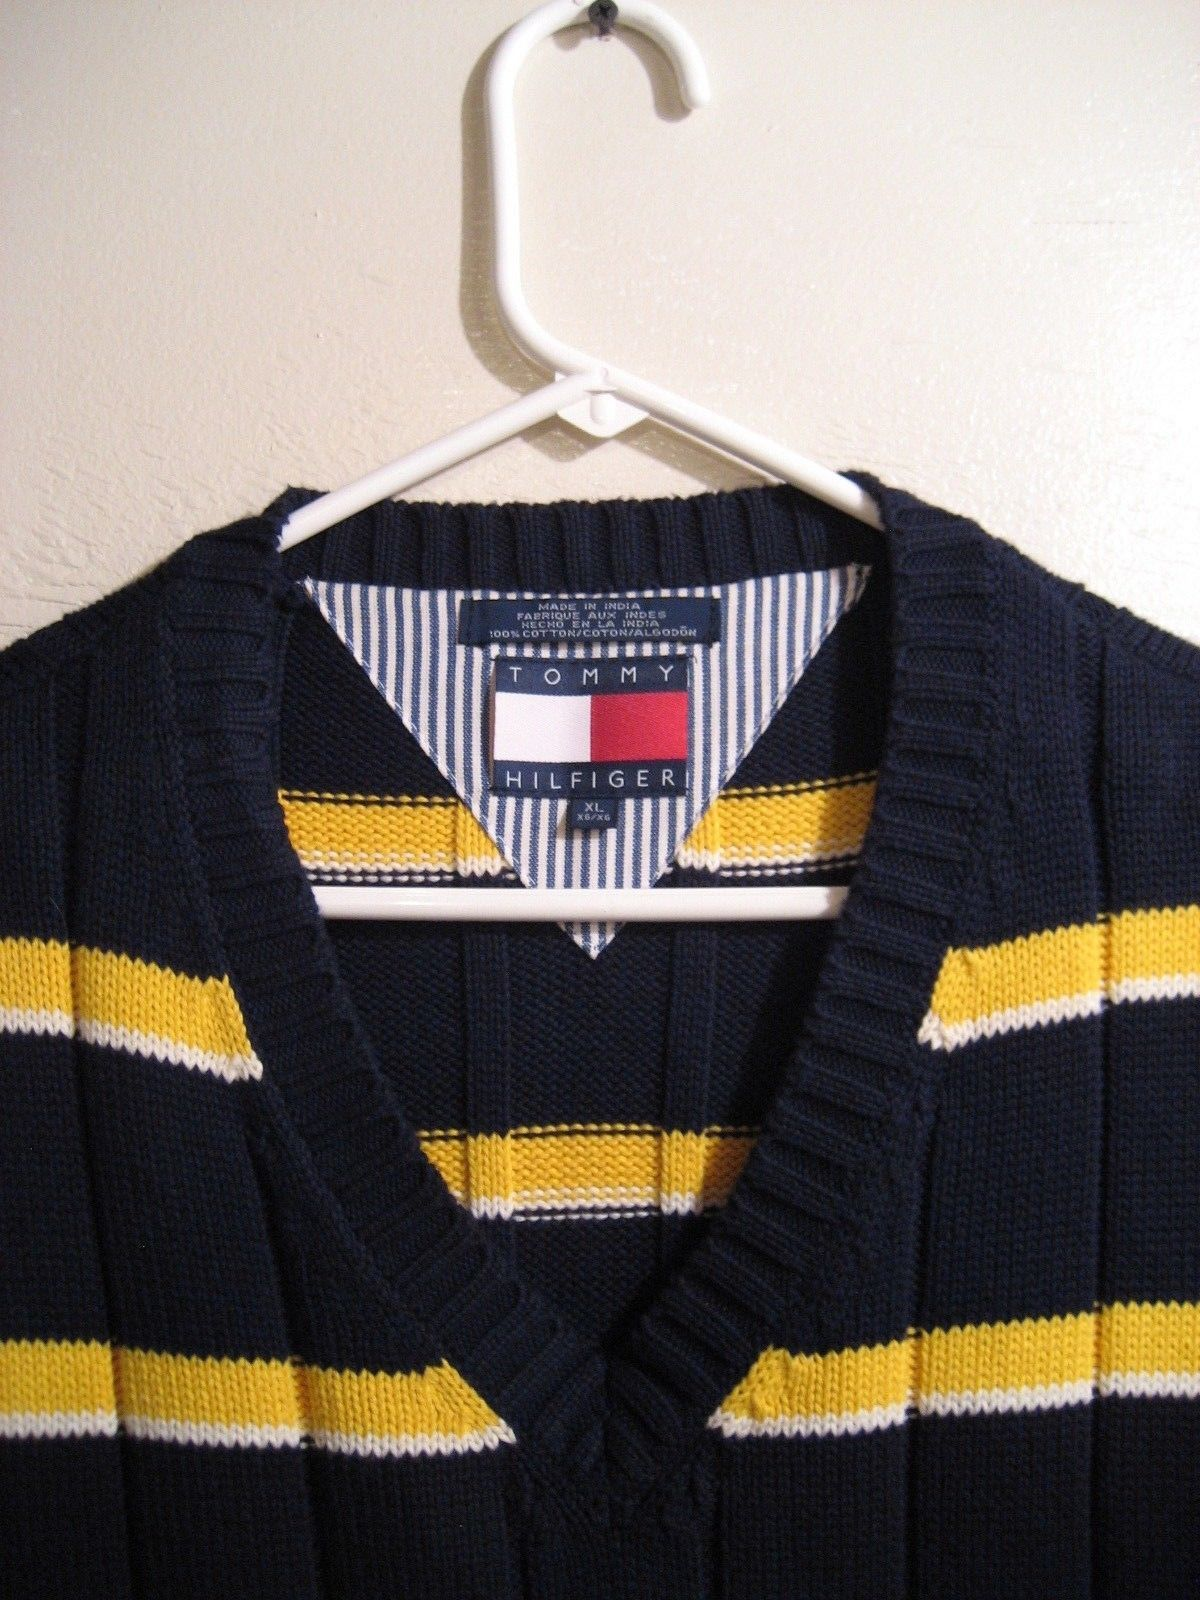 MENS TOMMY HILFIGER KNIT SWEATER VEST, SIZE XL 100% COTTON image 3